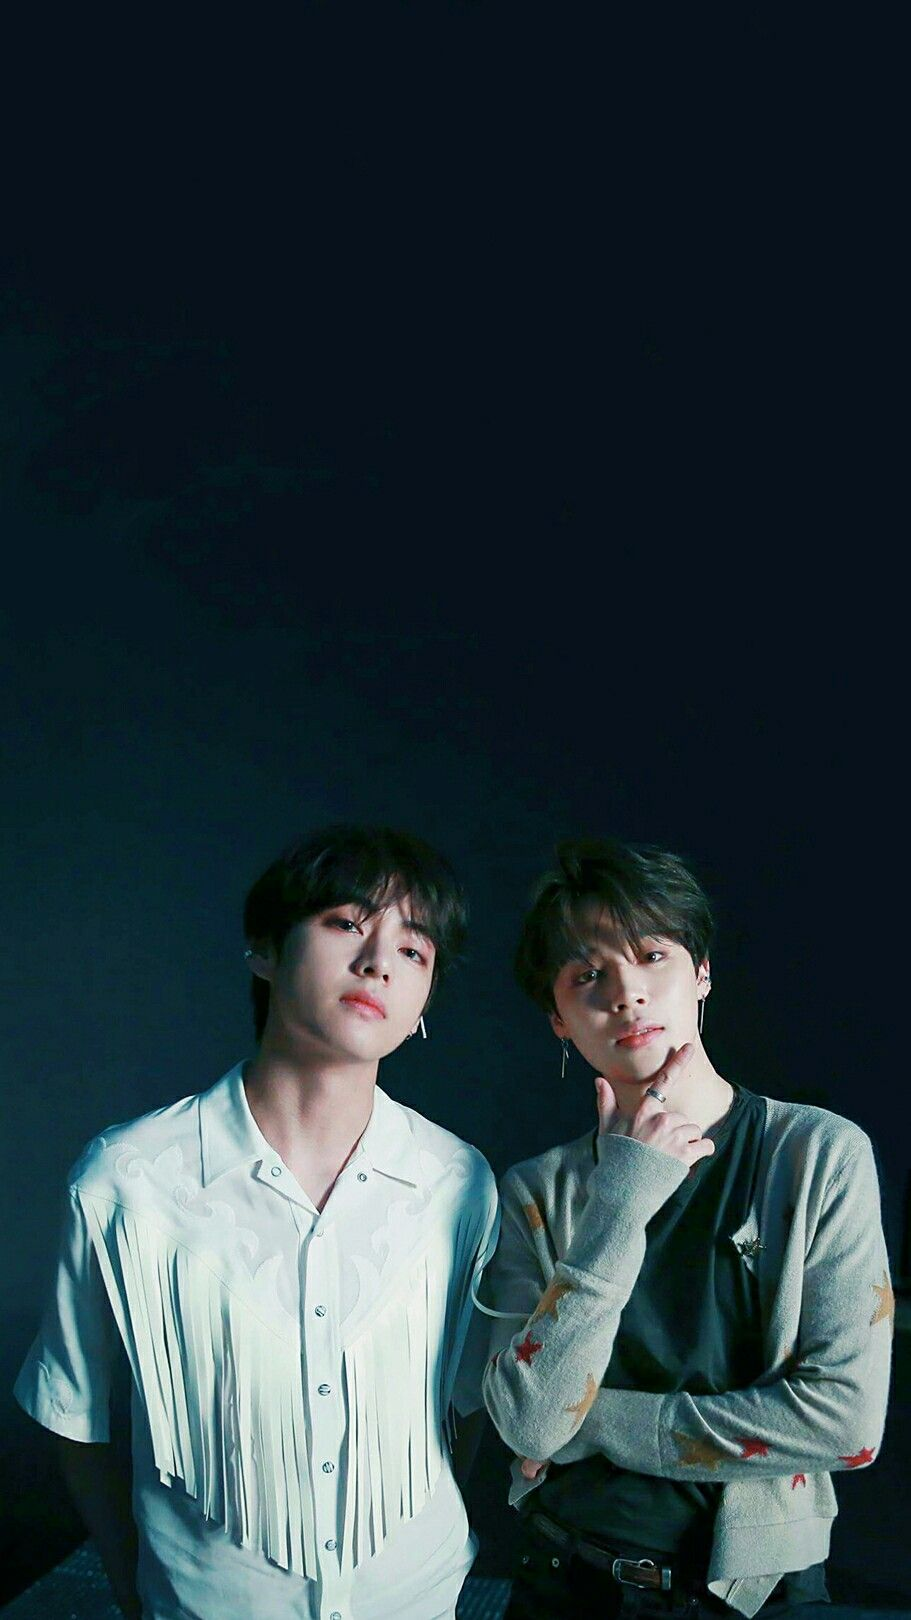 Bts Edits Bts Wallpapers Bts Love Yourself Tear Sketch Pls Make Sure To Follow Me Before U Save It Find More On My Account B Bts Vmin Vmin Bts Jimin